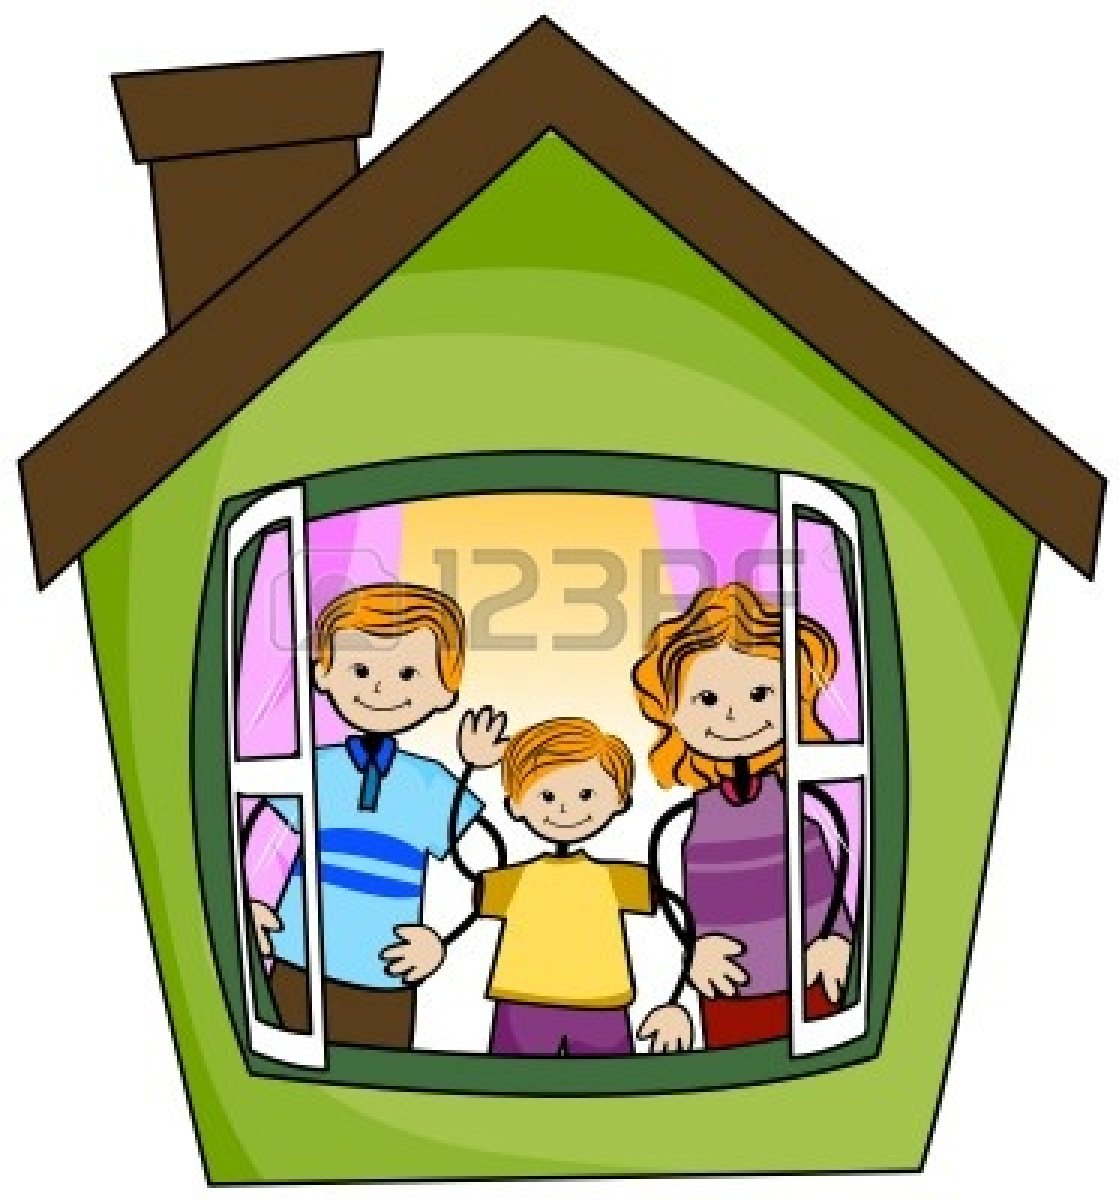 Bungalow clipart my house Inside House on Images Download